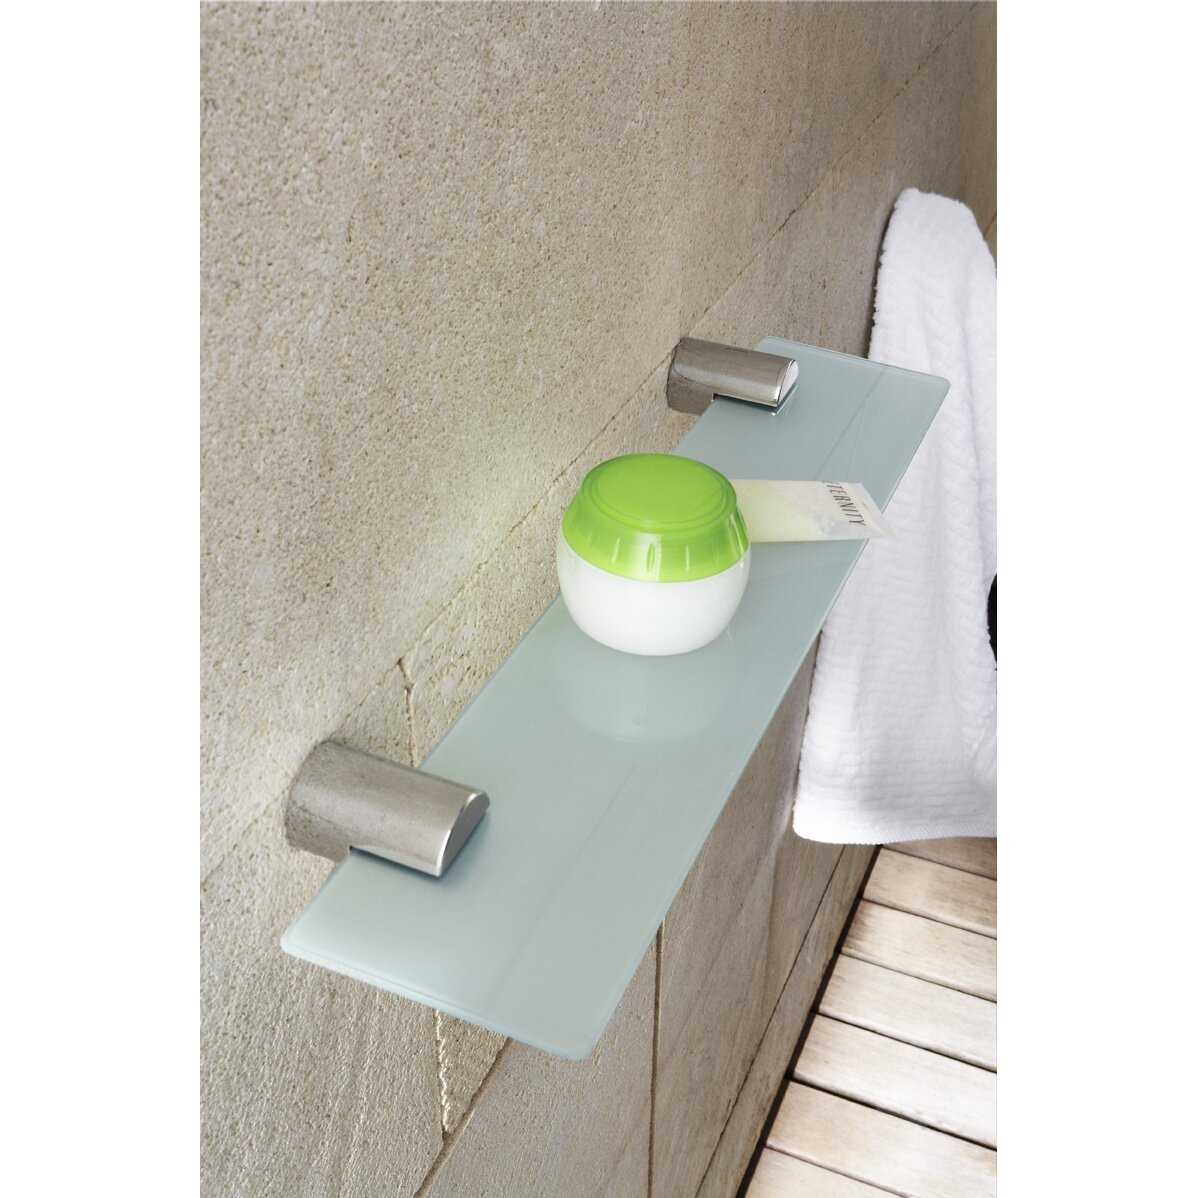 Bathroom Shelf Duo 236 W Bathroom Shelf Reviews Allmodern